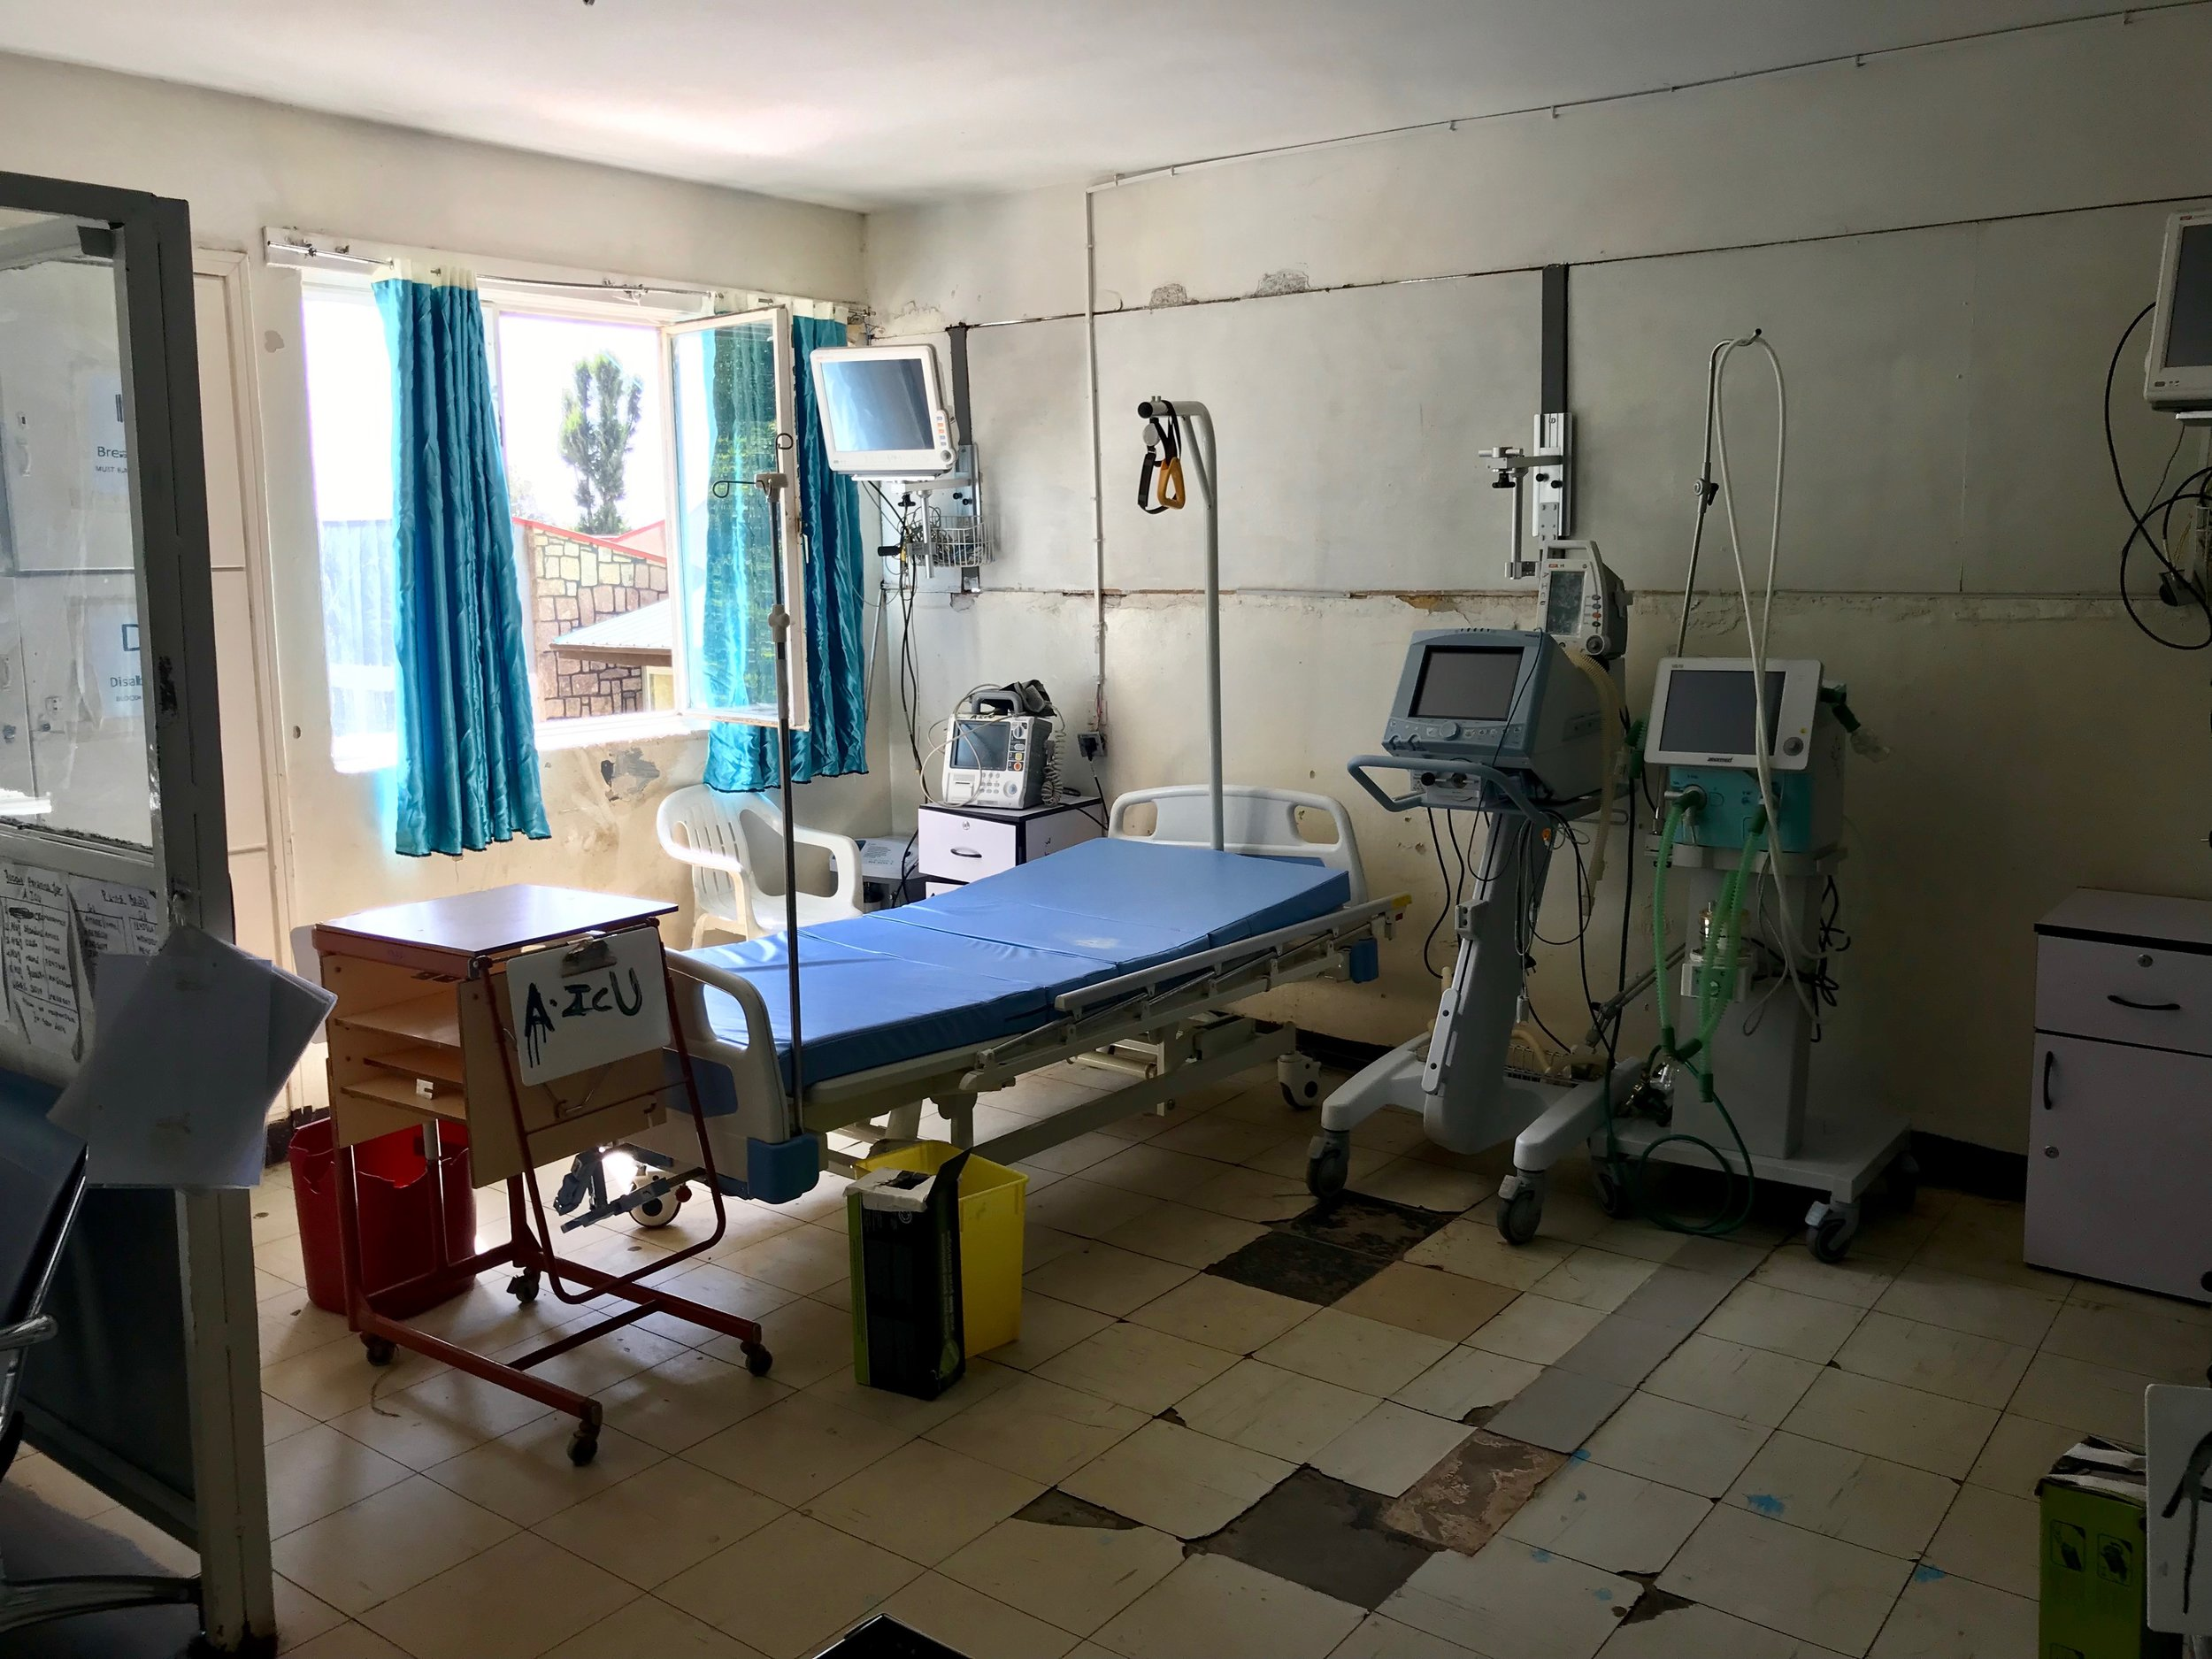 A bed in the intensive care unit of the Hosanna hospital.